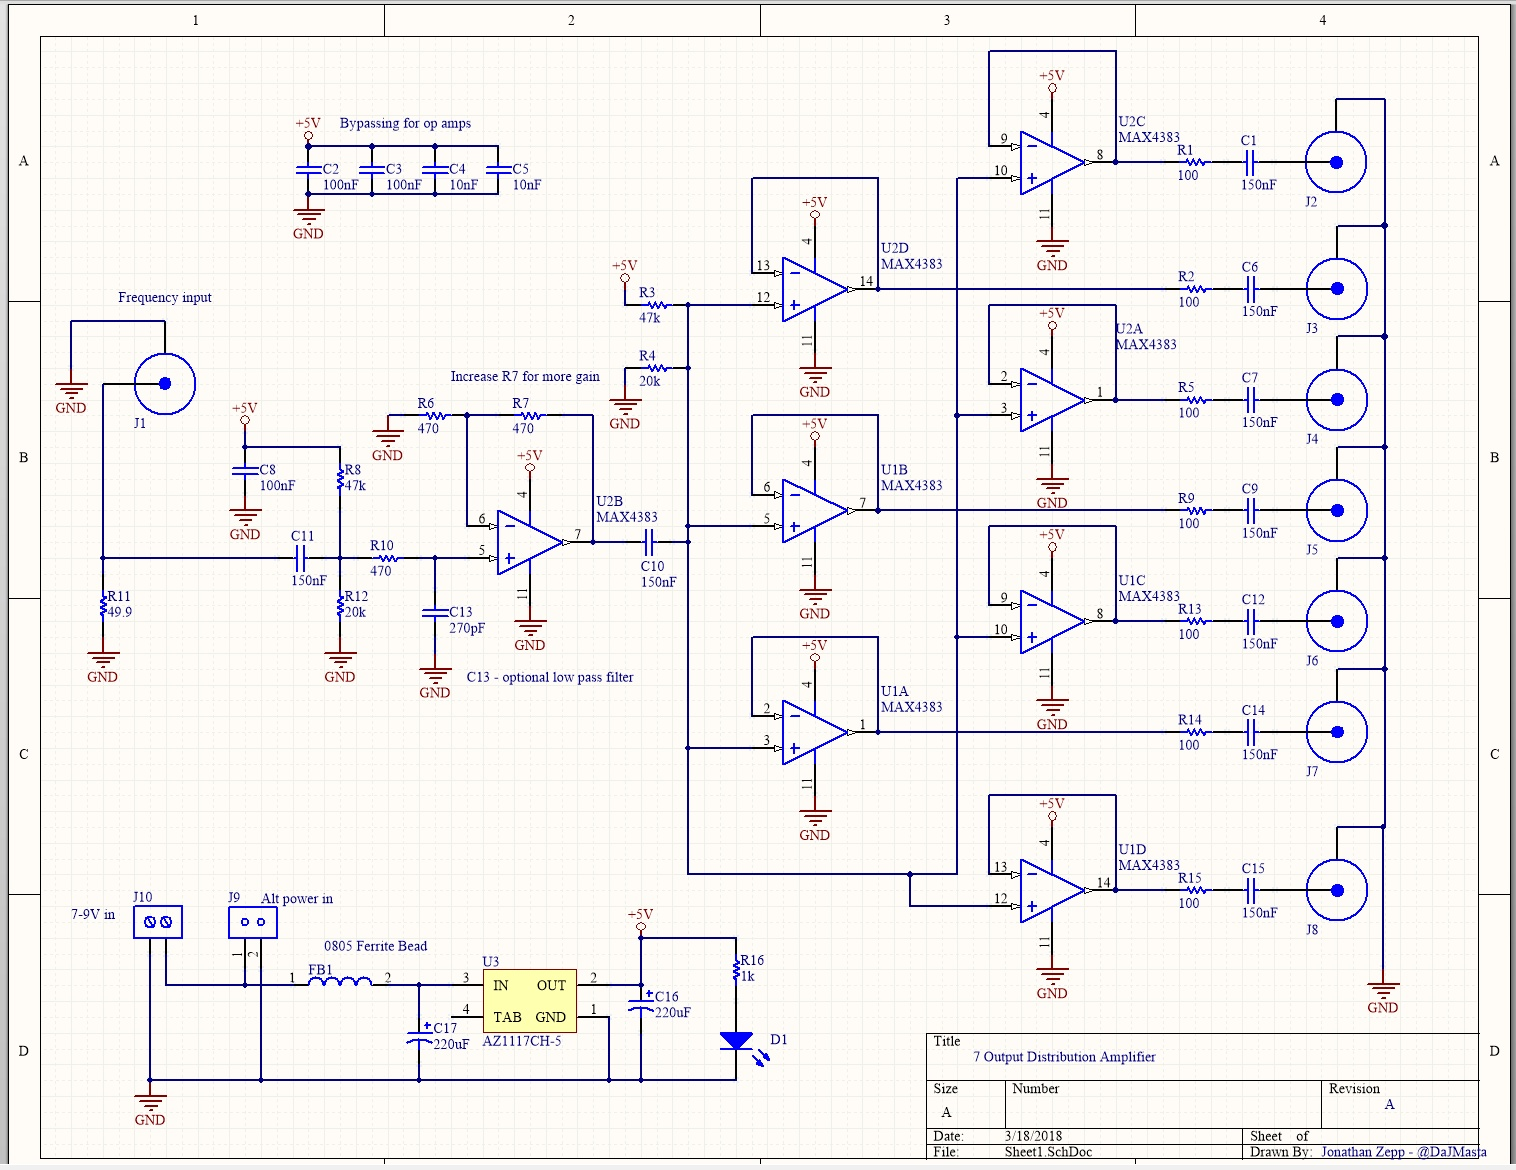 DIY 10 MHz Distribution Amplifier - Requirements Gathering - Page 1